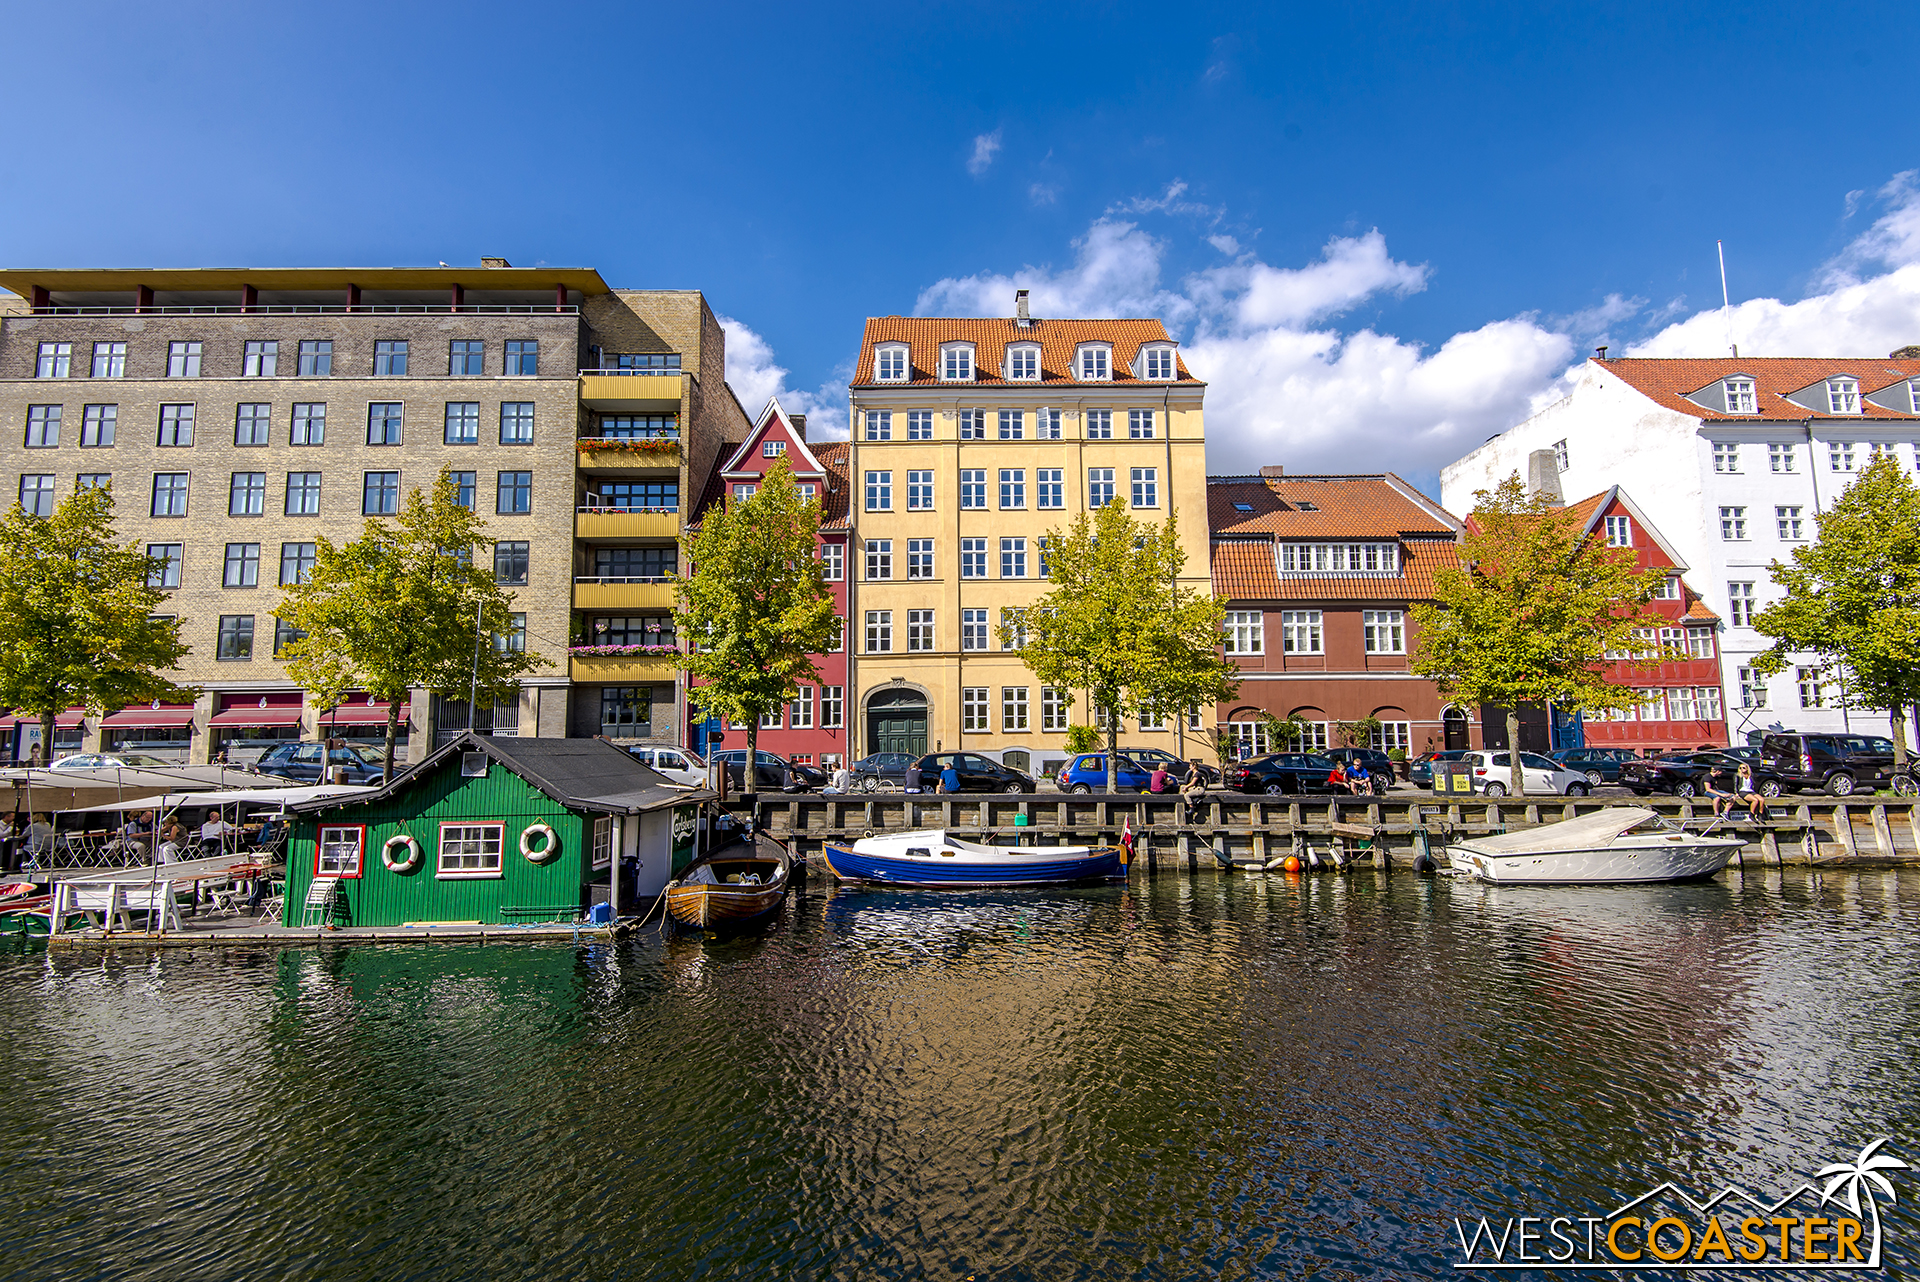 Christianshavn has its fair share of canals and waterfront too.